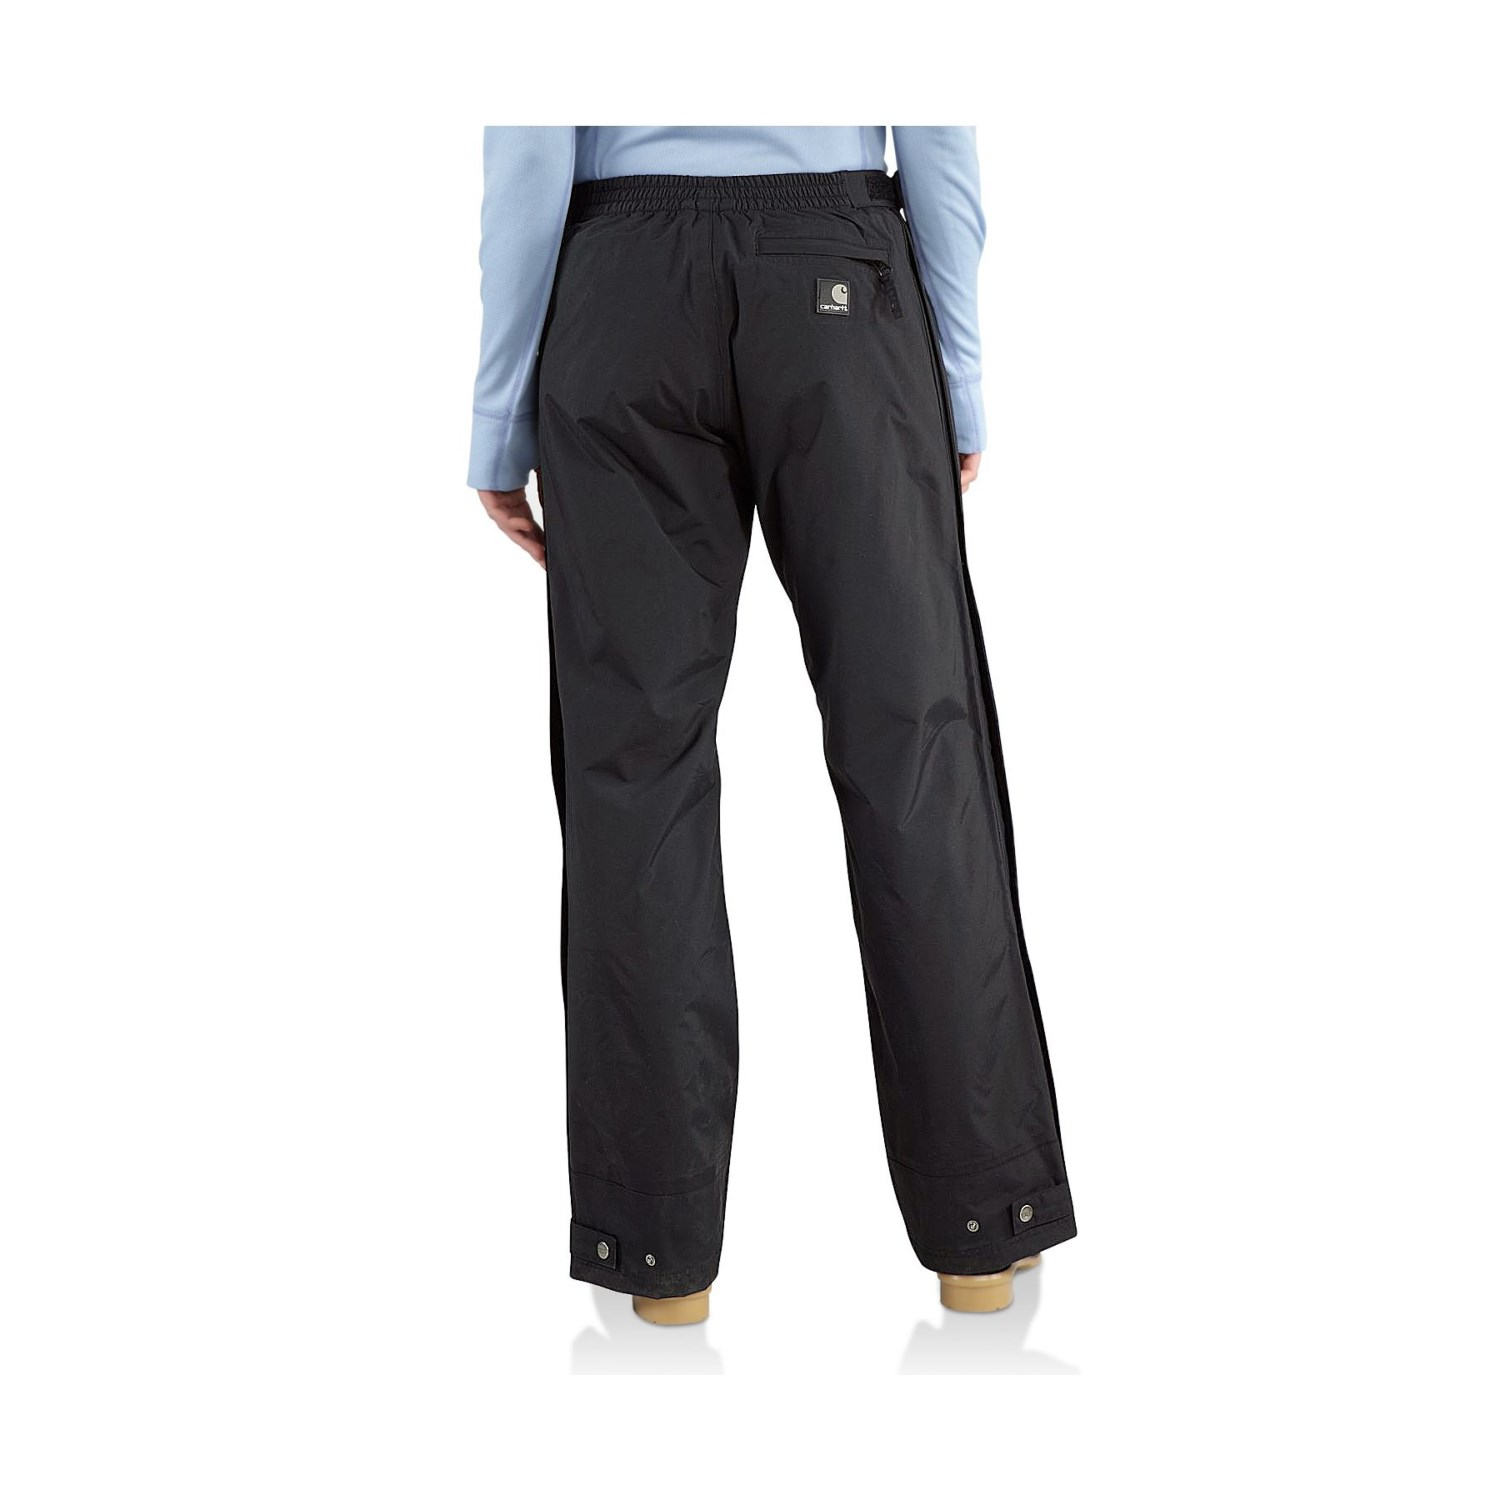 Carhartt clothing for women